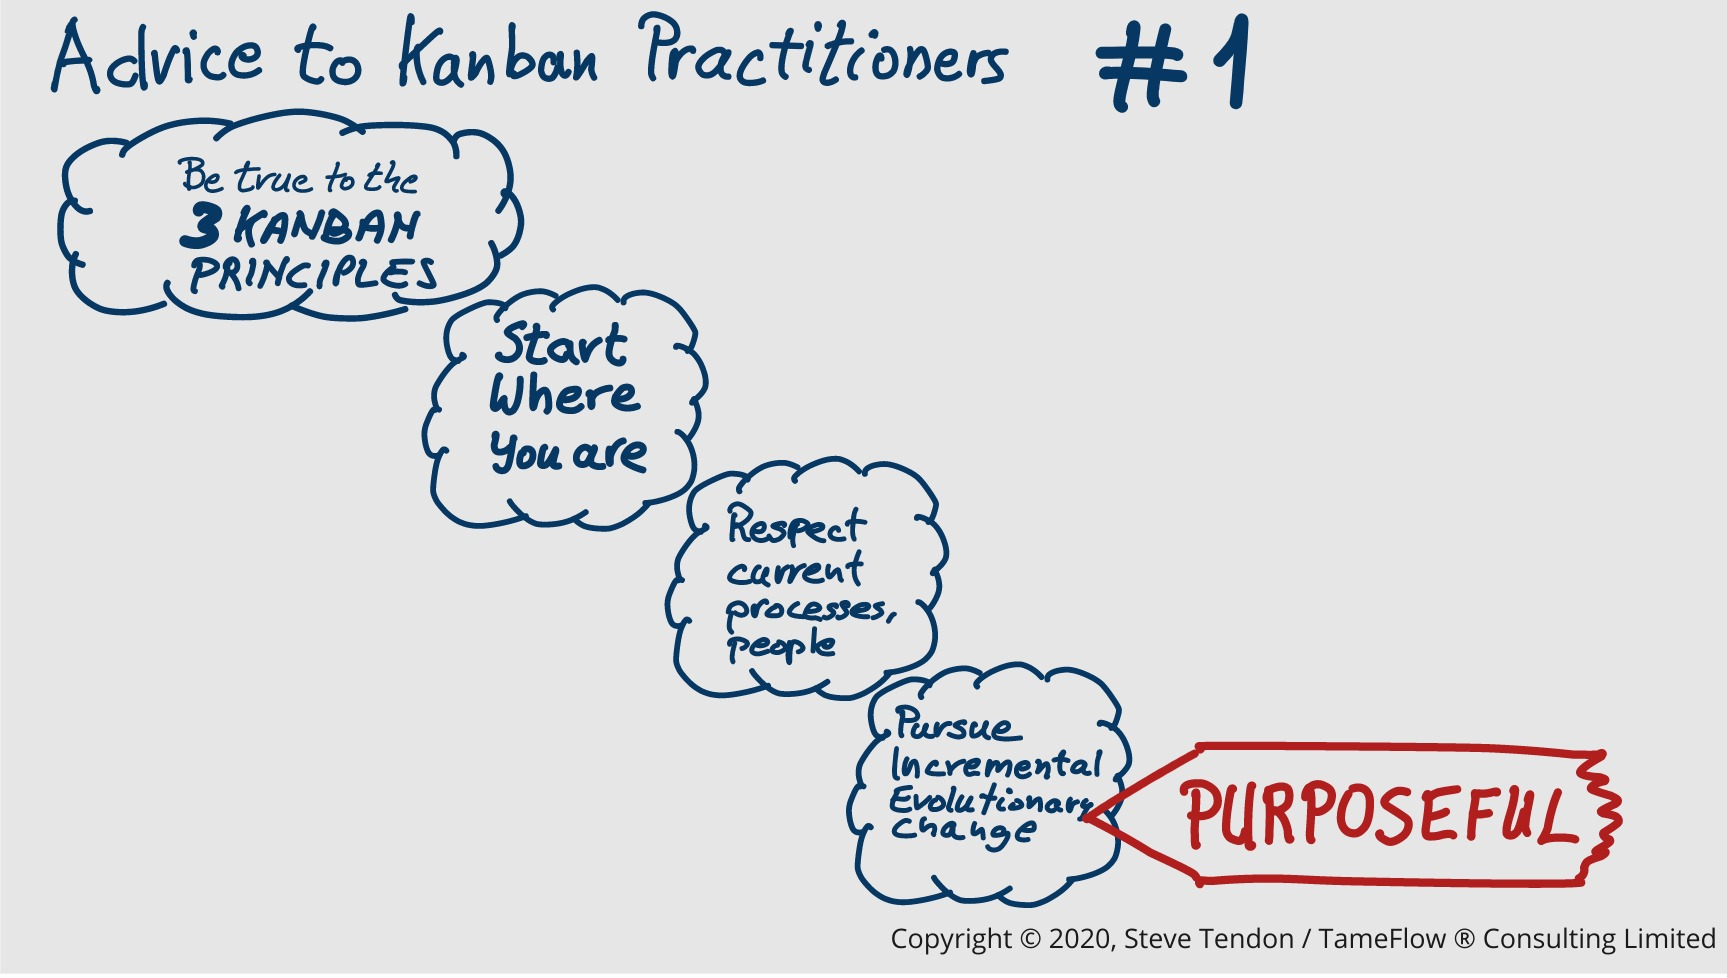 True to the Kanban Principles